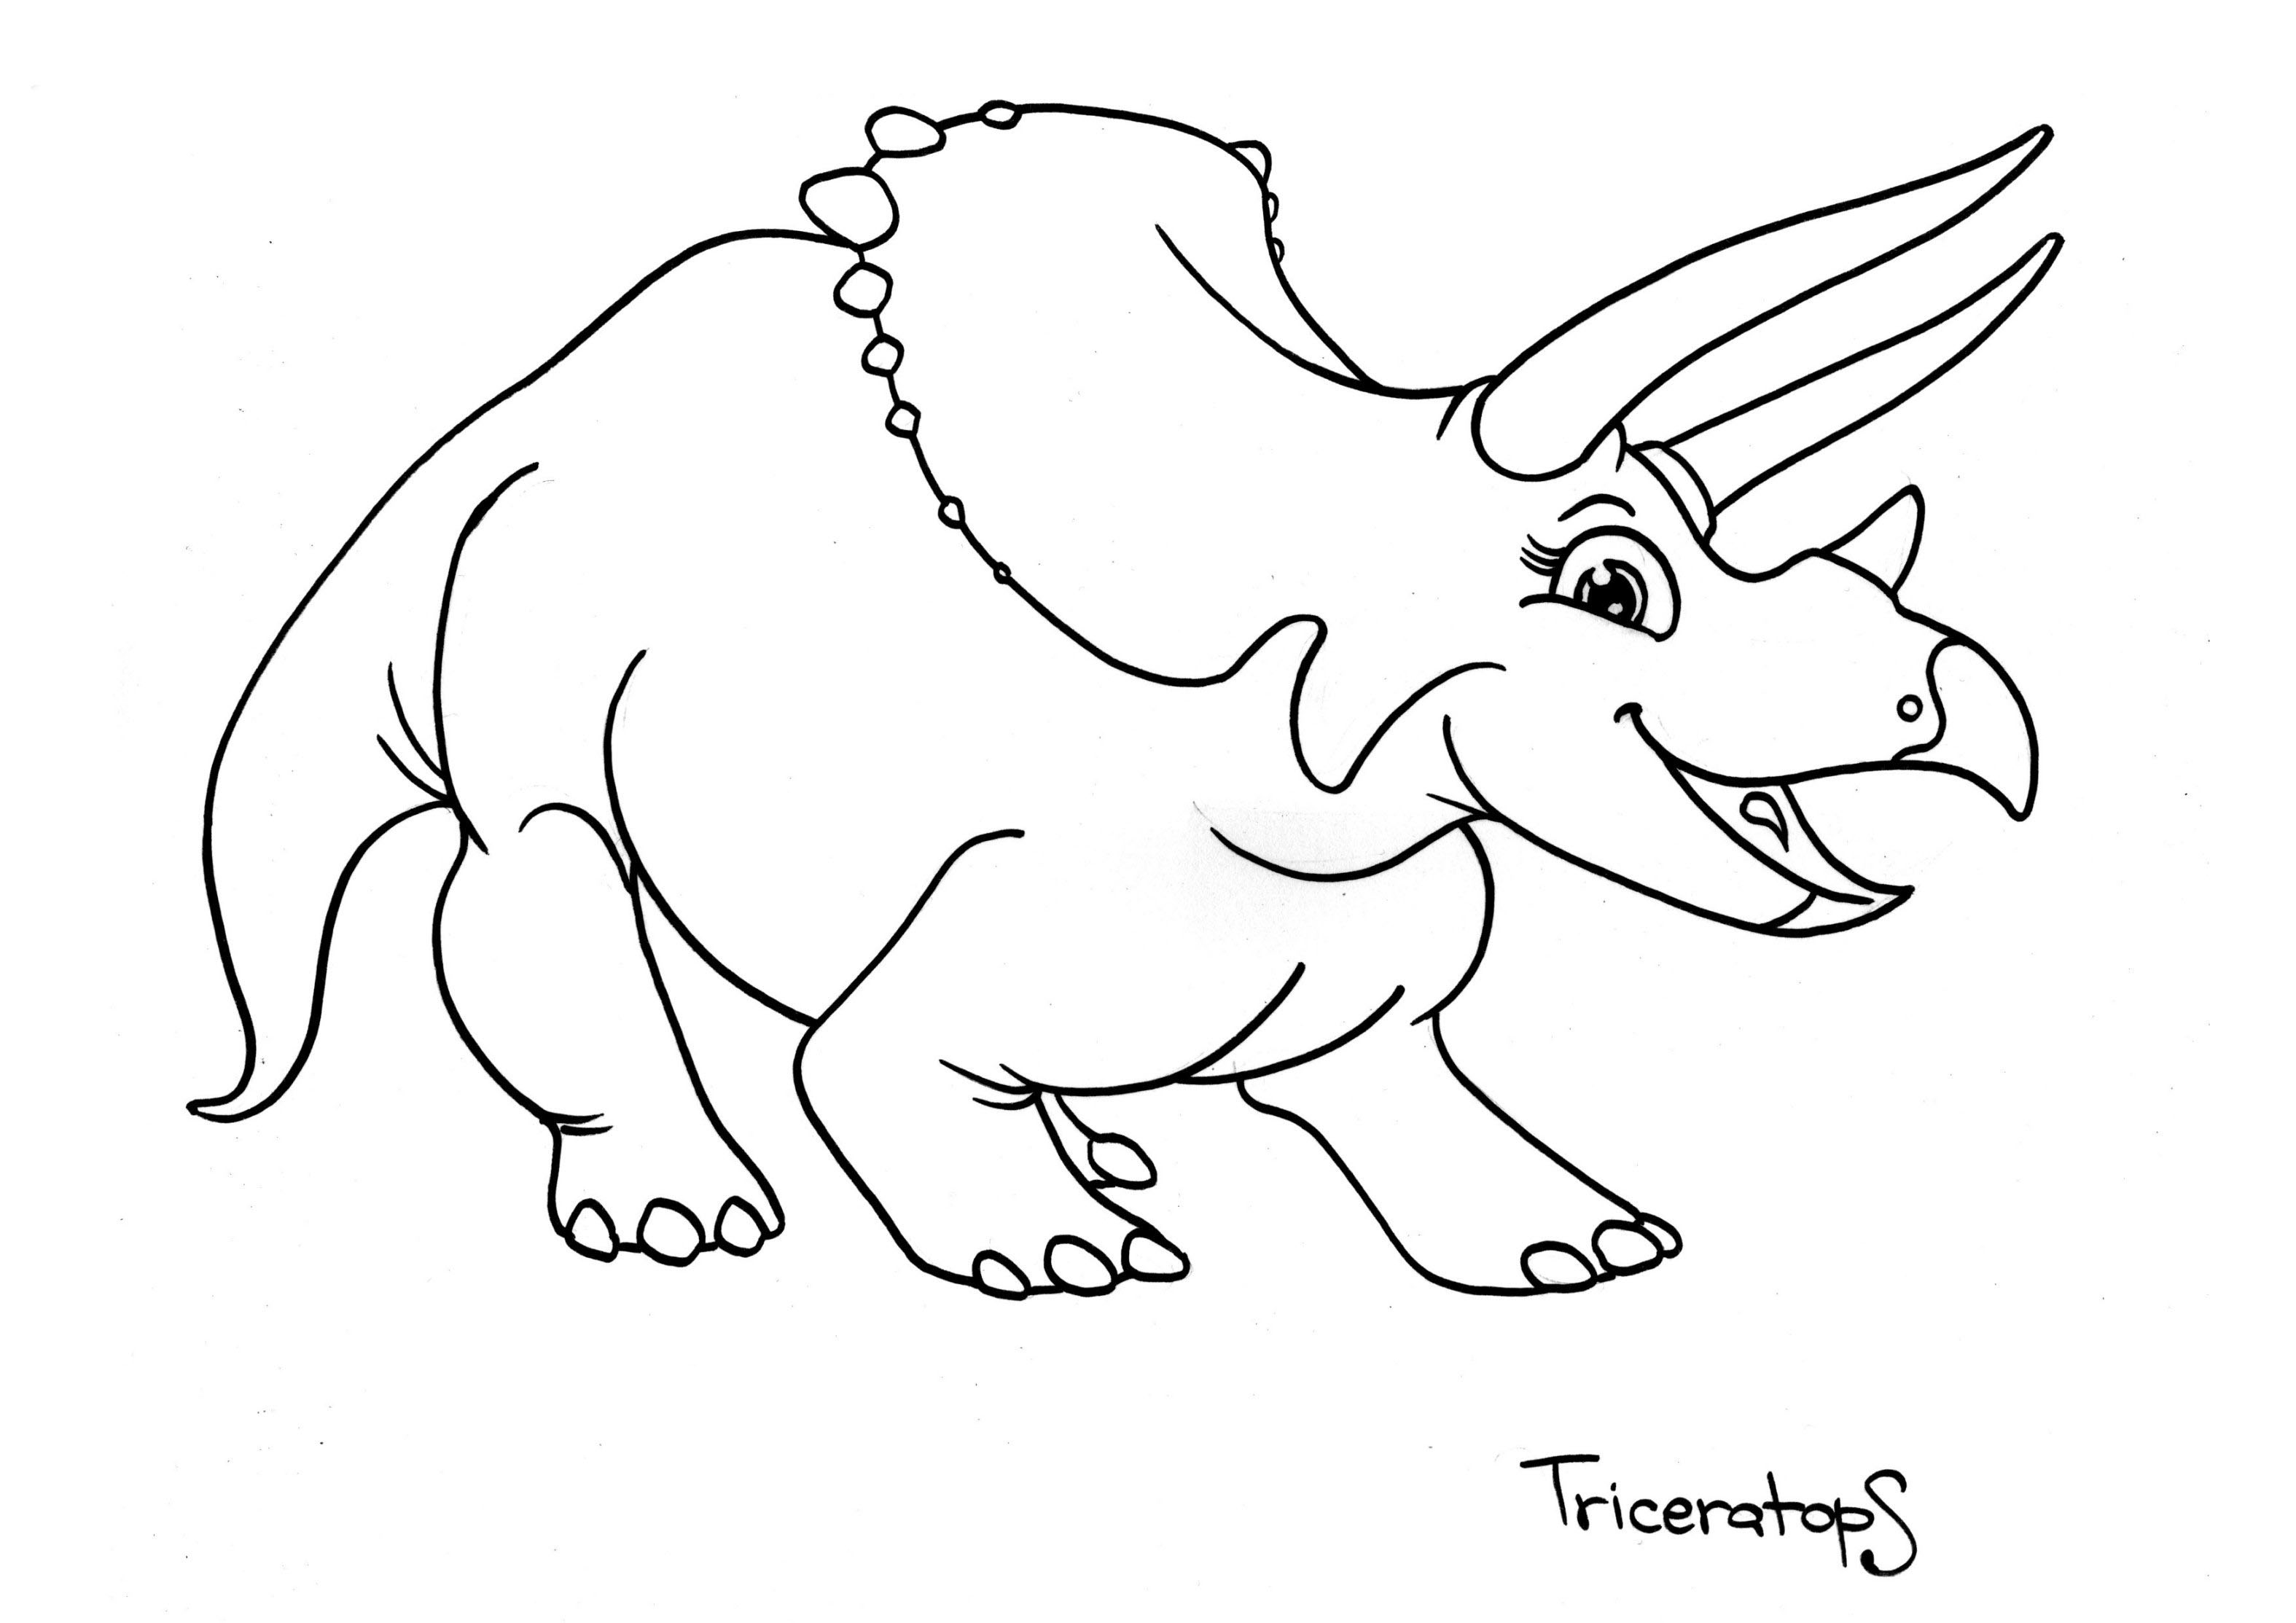 dinosaur images to colour preschool dinosaur coloring page easy to color for kids dinosaur images colour to